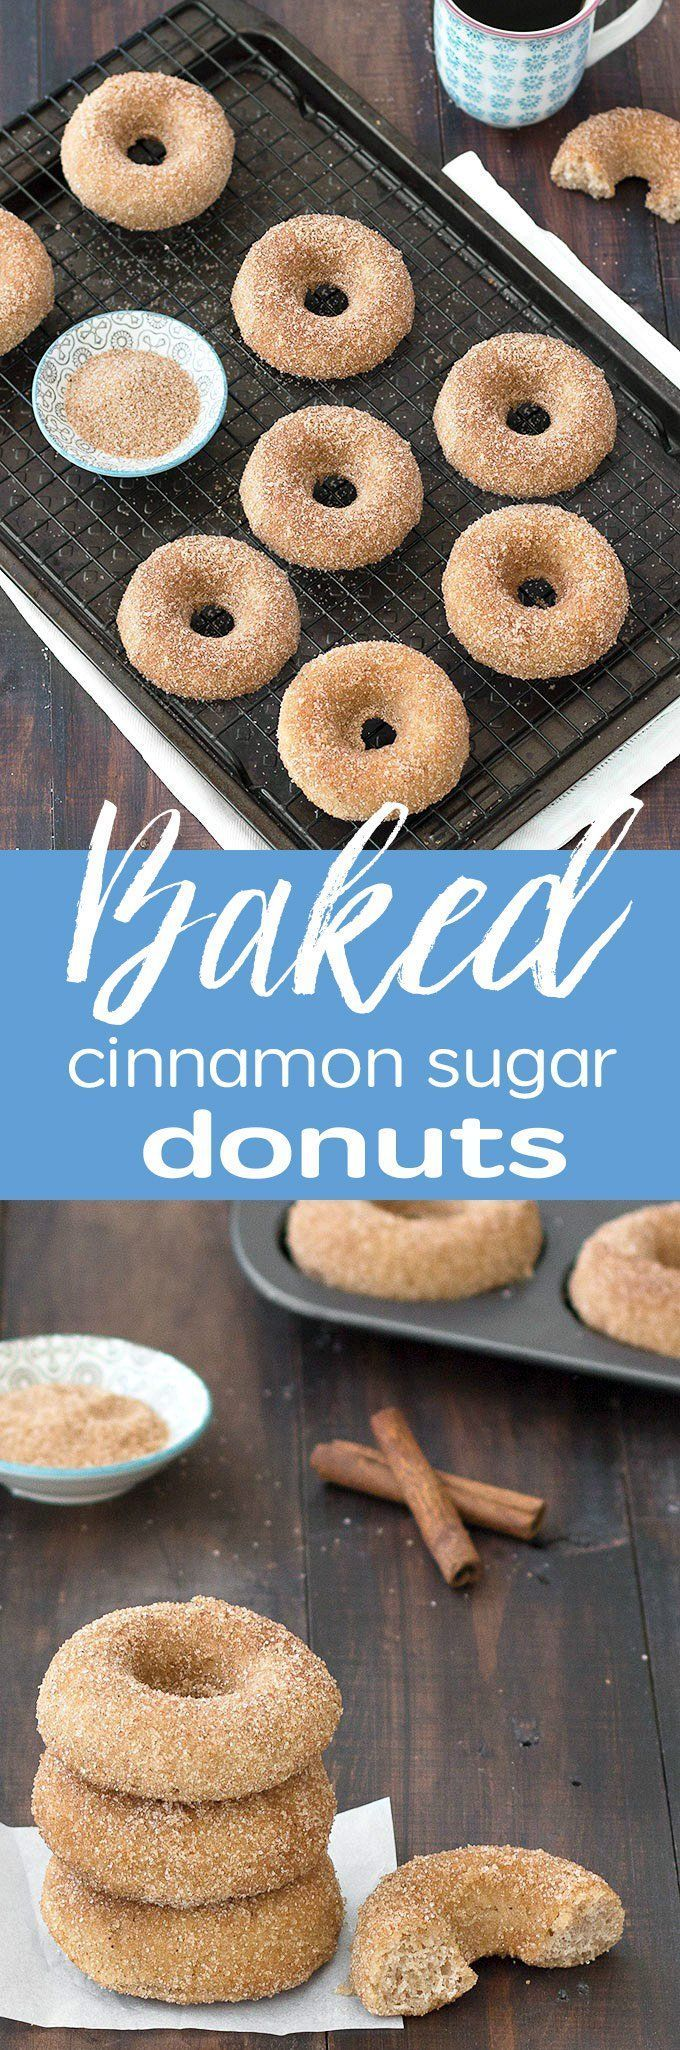 Baked Cinnamon Sugar Donuts is part of Cinnamon sugar donuts - Baked cinnamon sugar donuts  Moist, light and fluffy donuts baked in a donut pan and topped with a cinnamonsugar mixture